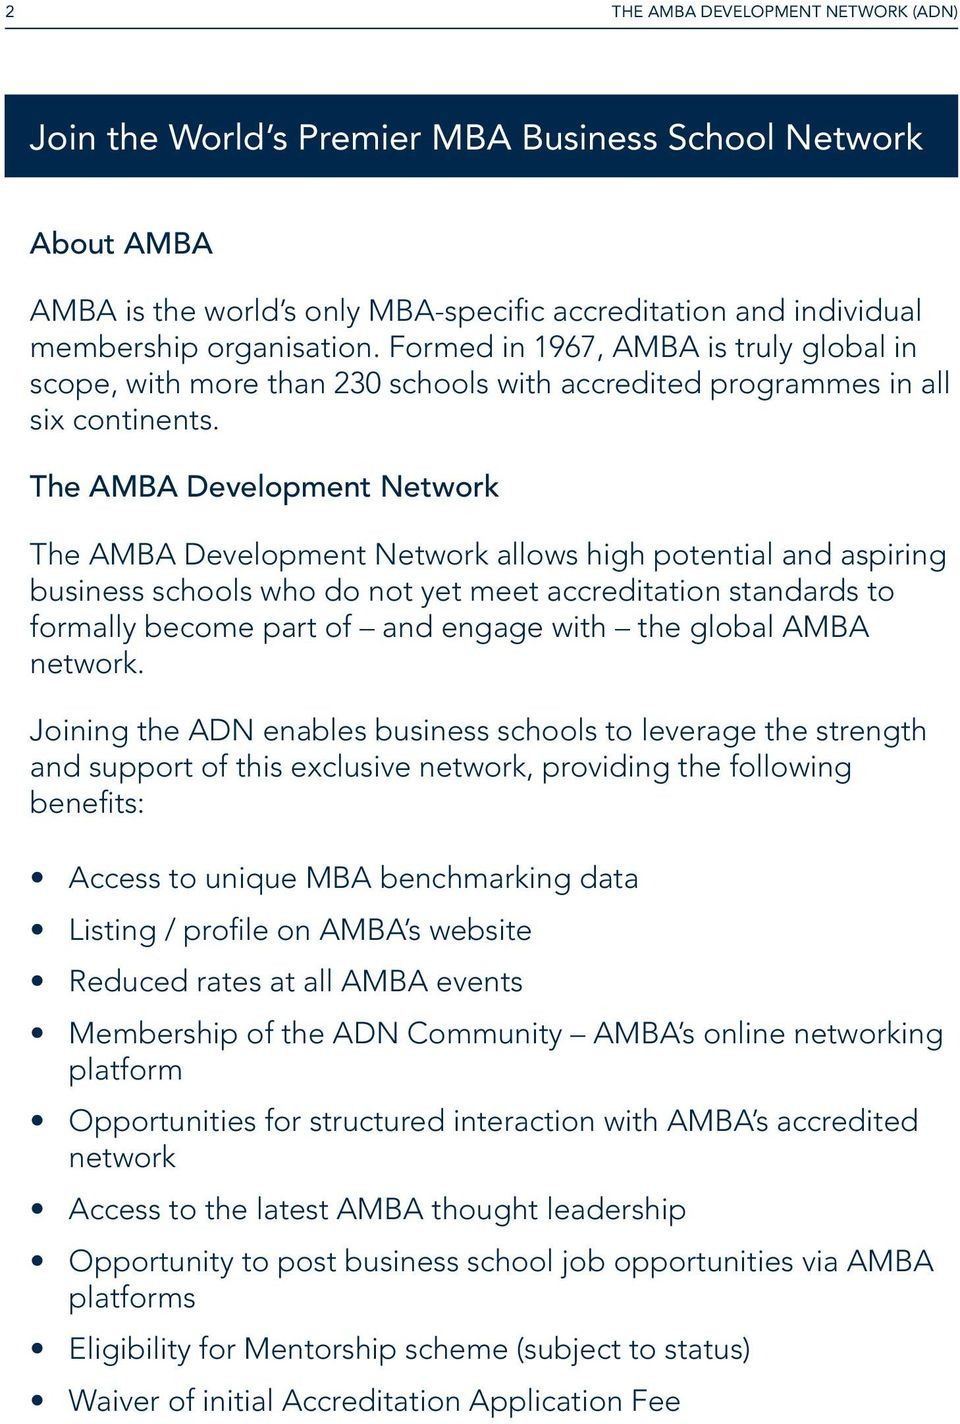 Formed in 1967, AMBA is truly global in scope, with more than 230 schools with accredited programmes in all six continents.